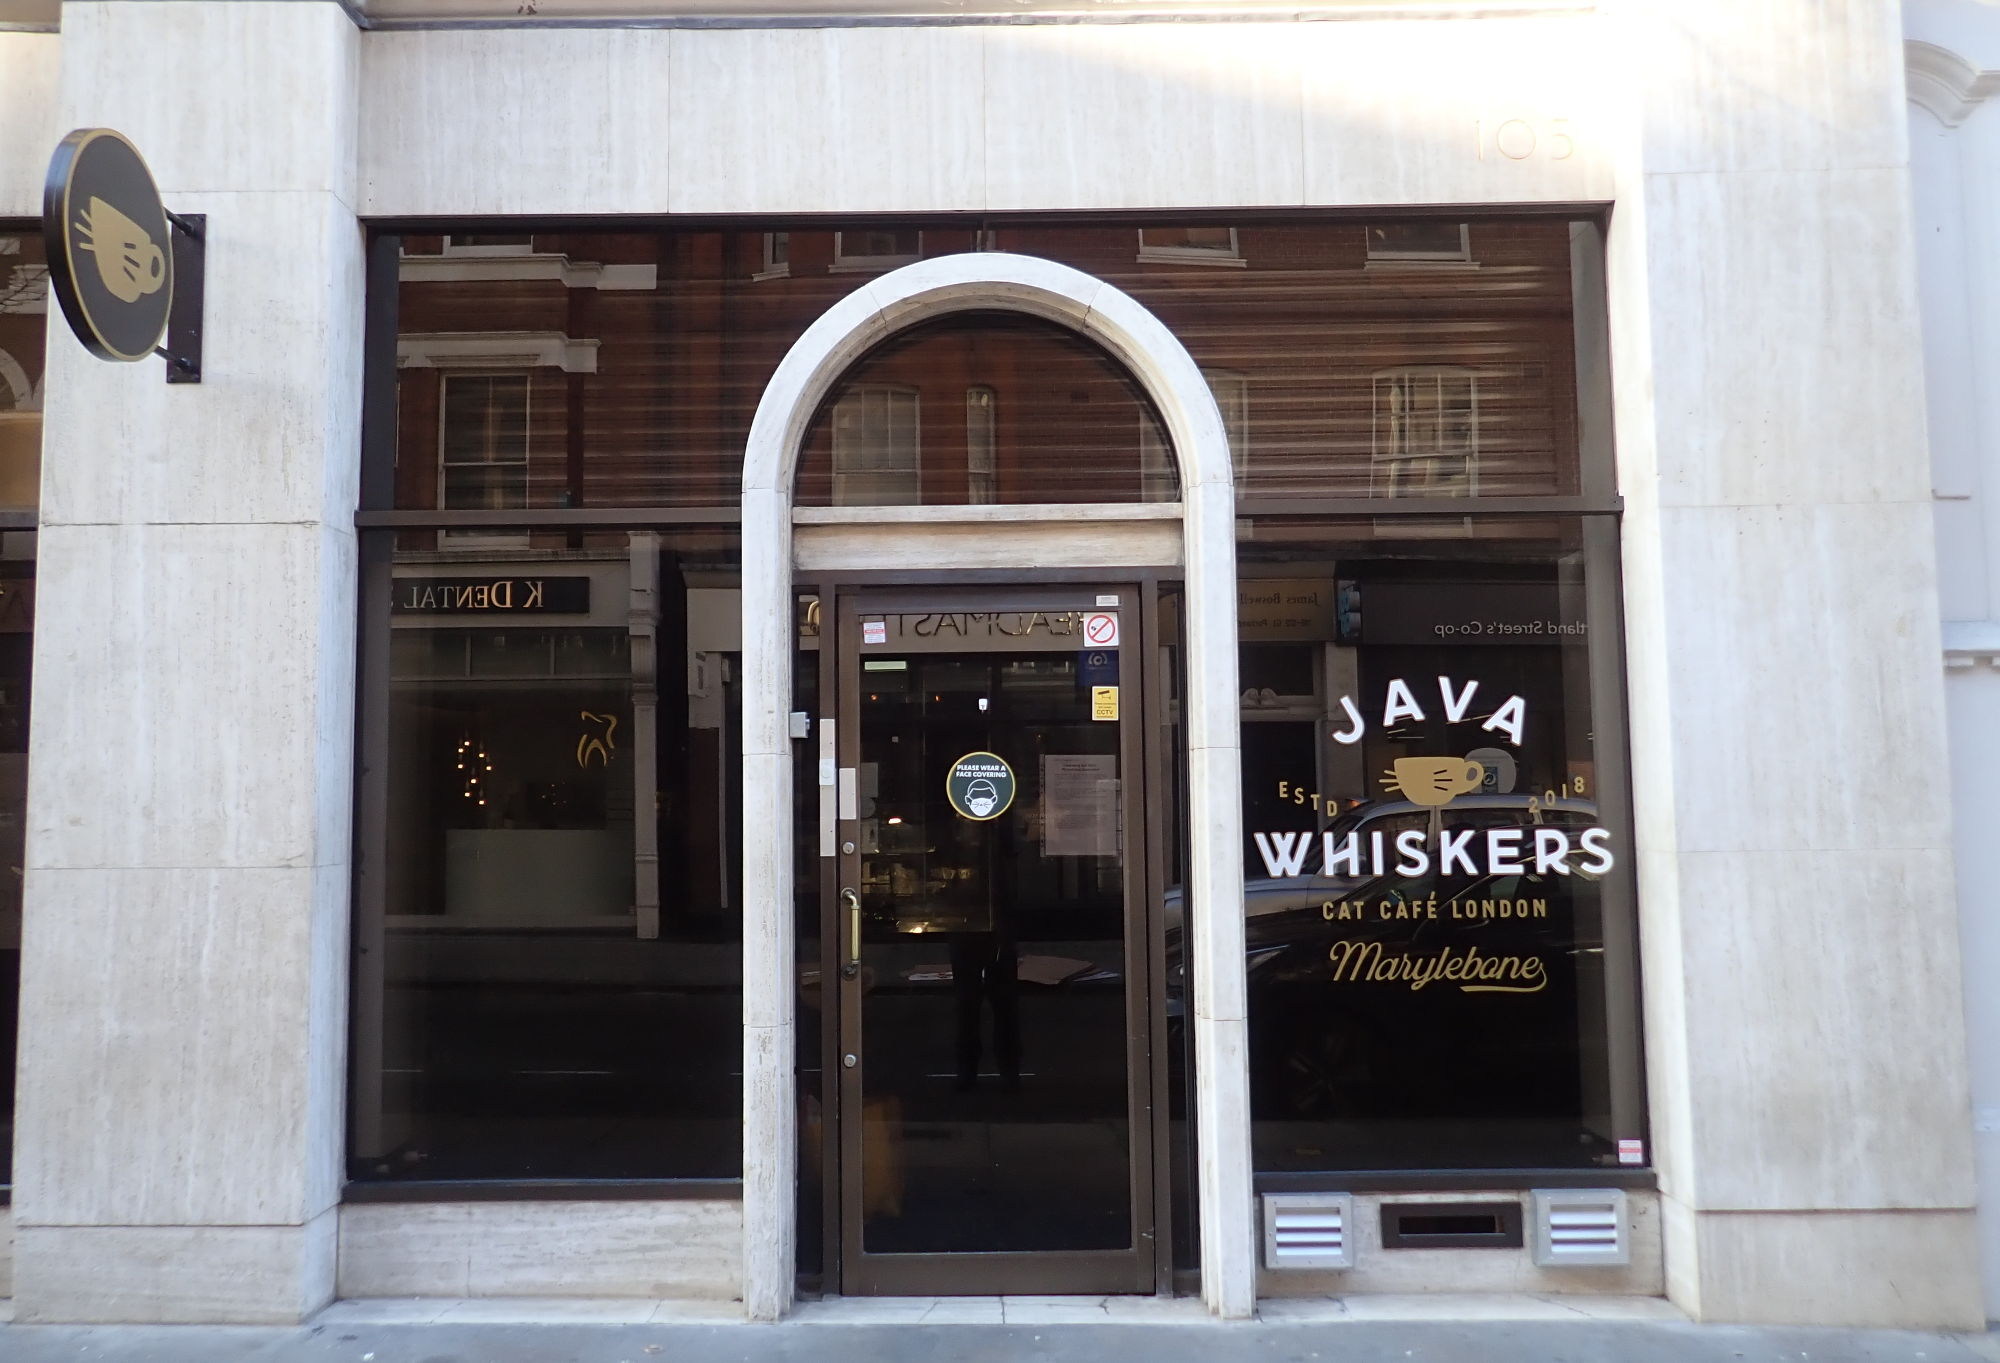 View from the street of Java Whiskers cat cafe at 105 Great Portland Street.